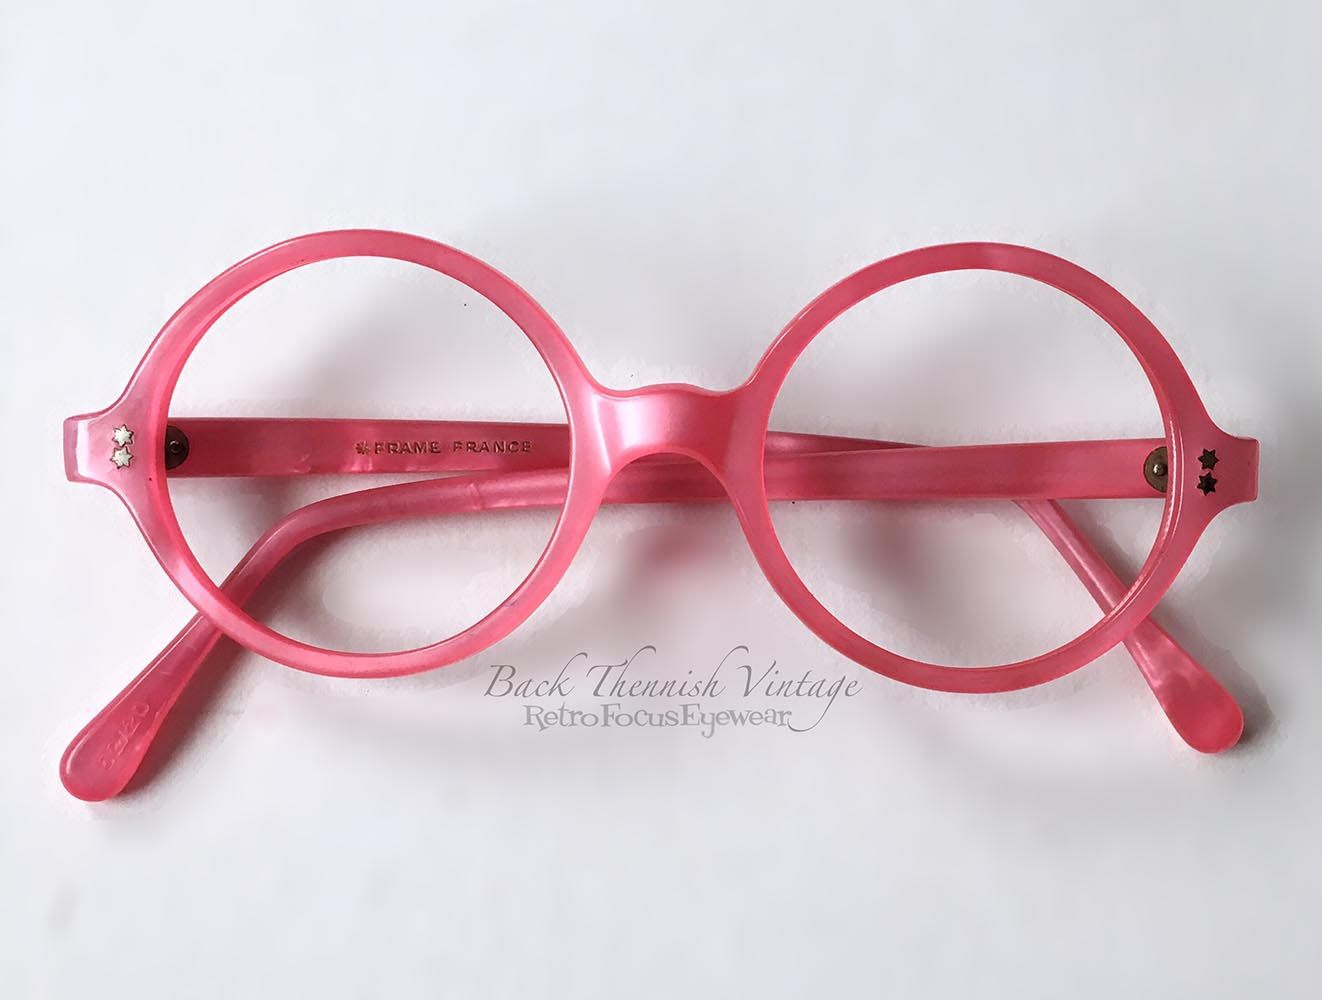 1960s french round eyeglass frames in hot pink pearlized frame perfect for the average width